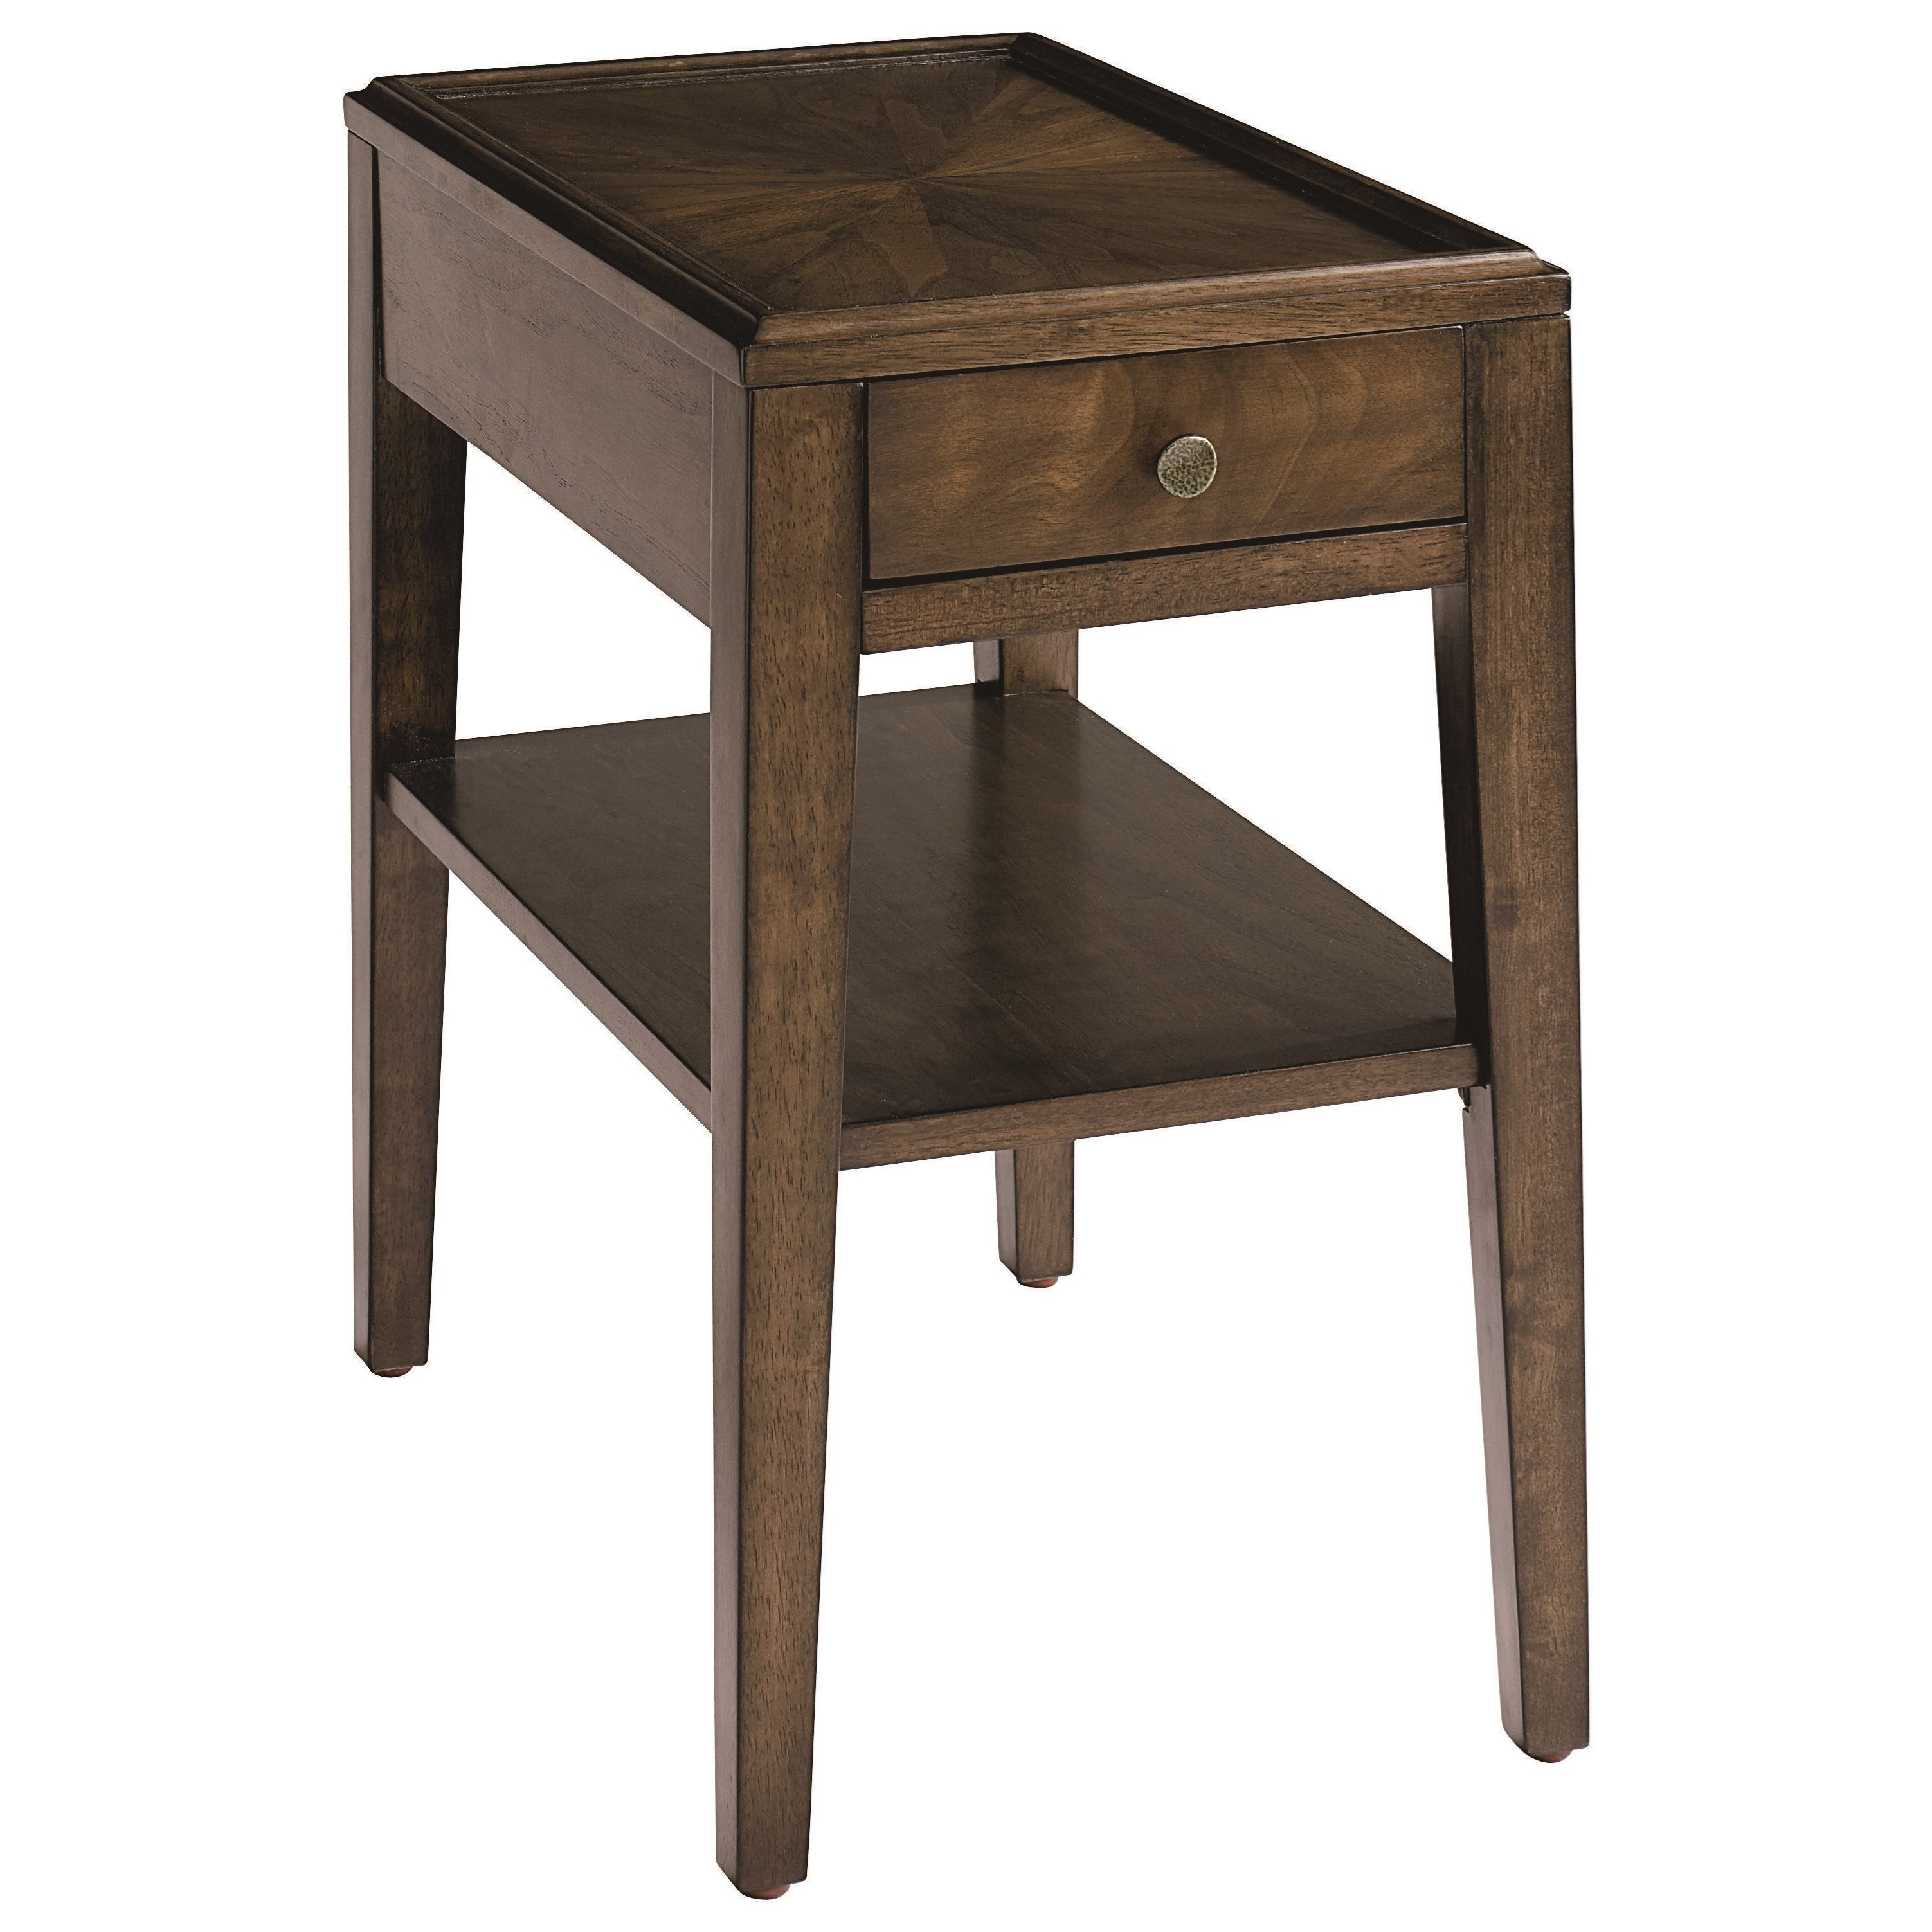 Palisades Chairside Table by Bassett at Furniture Superstore - Rochester, MN